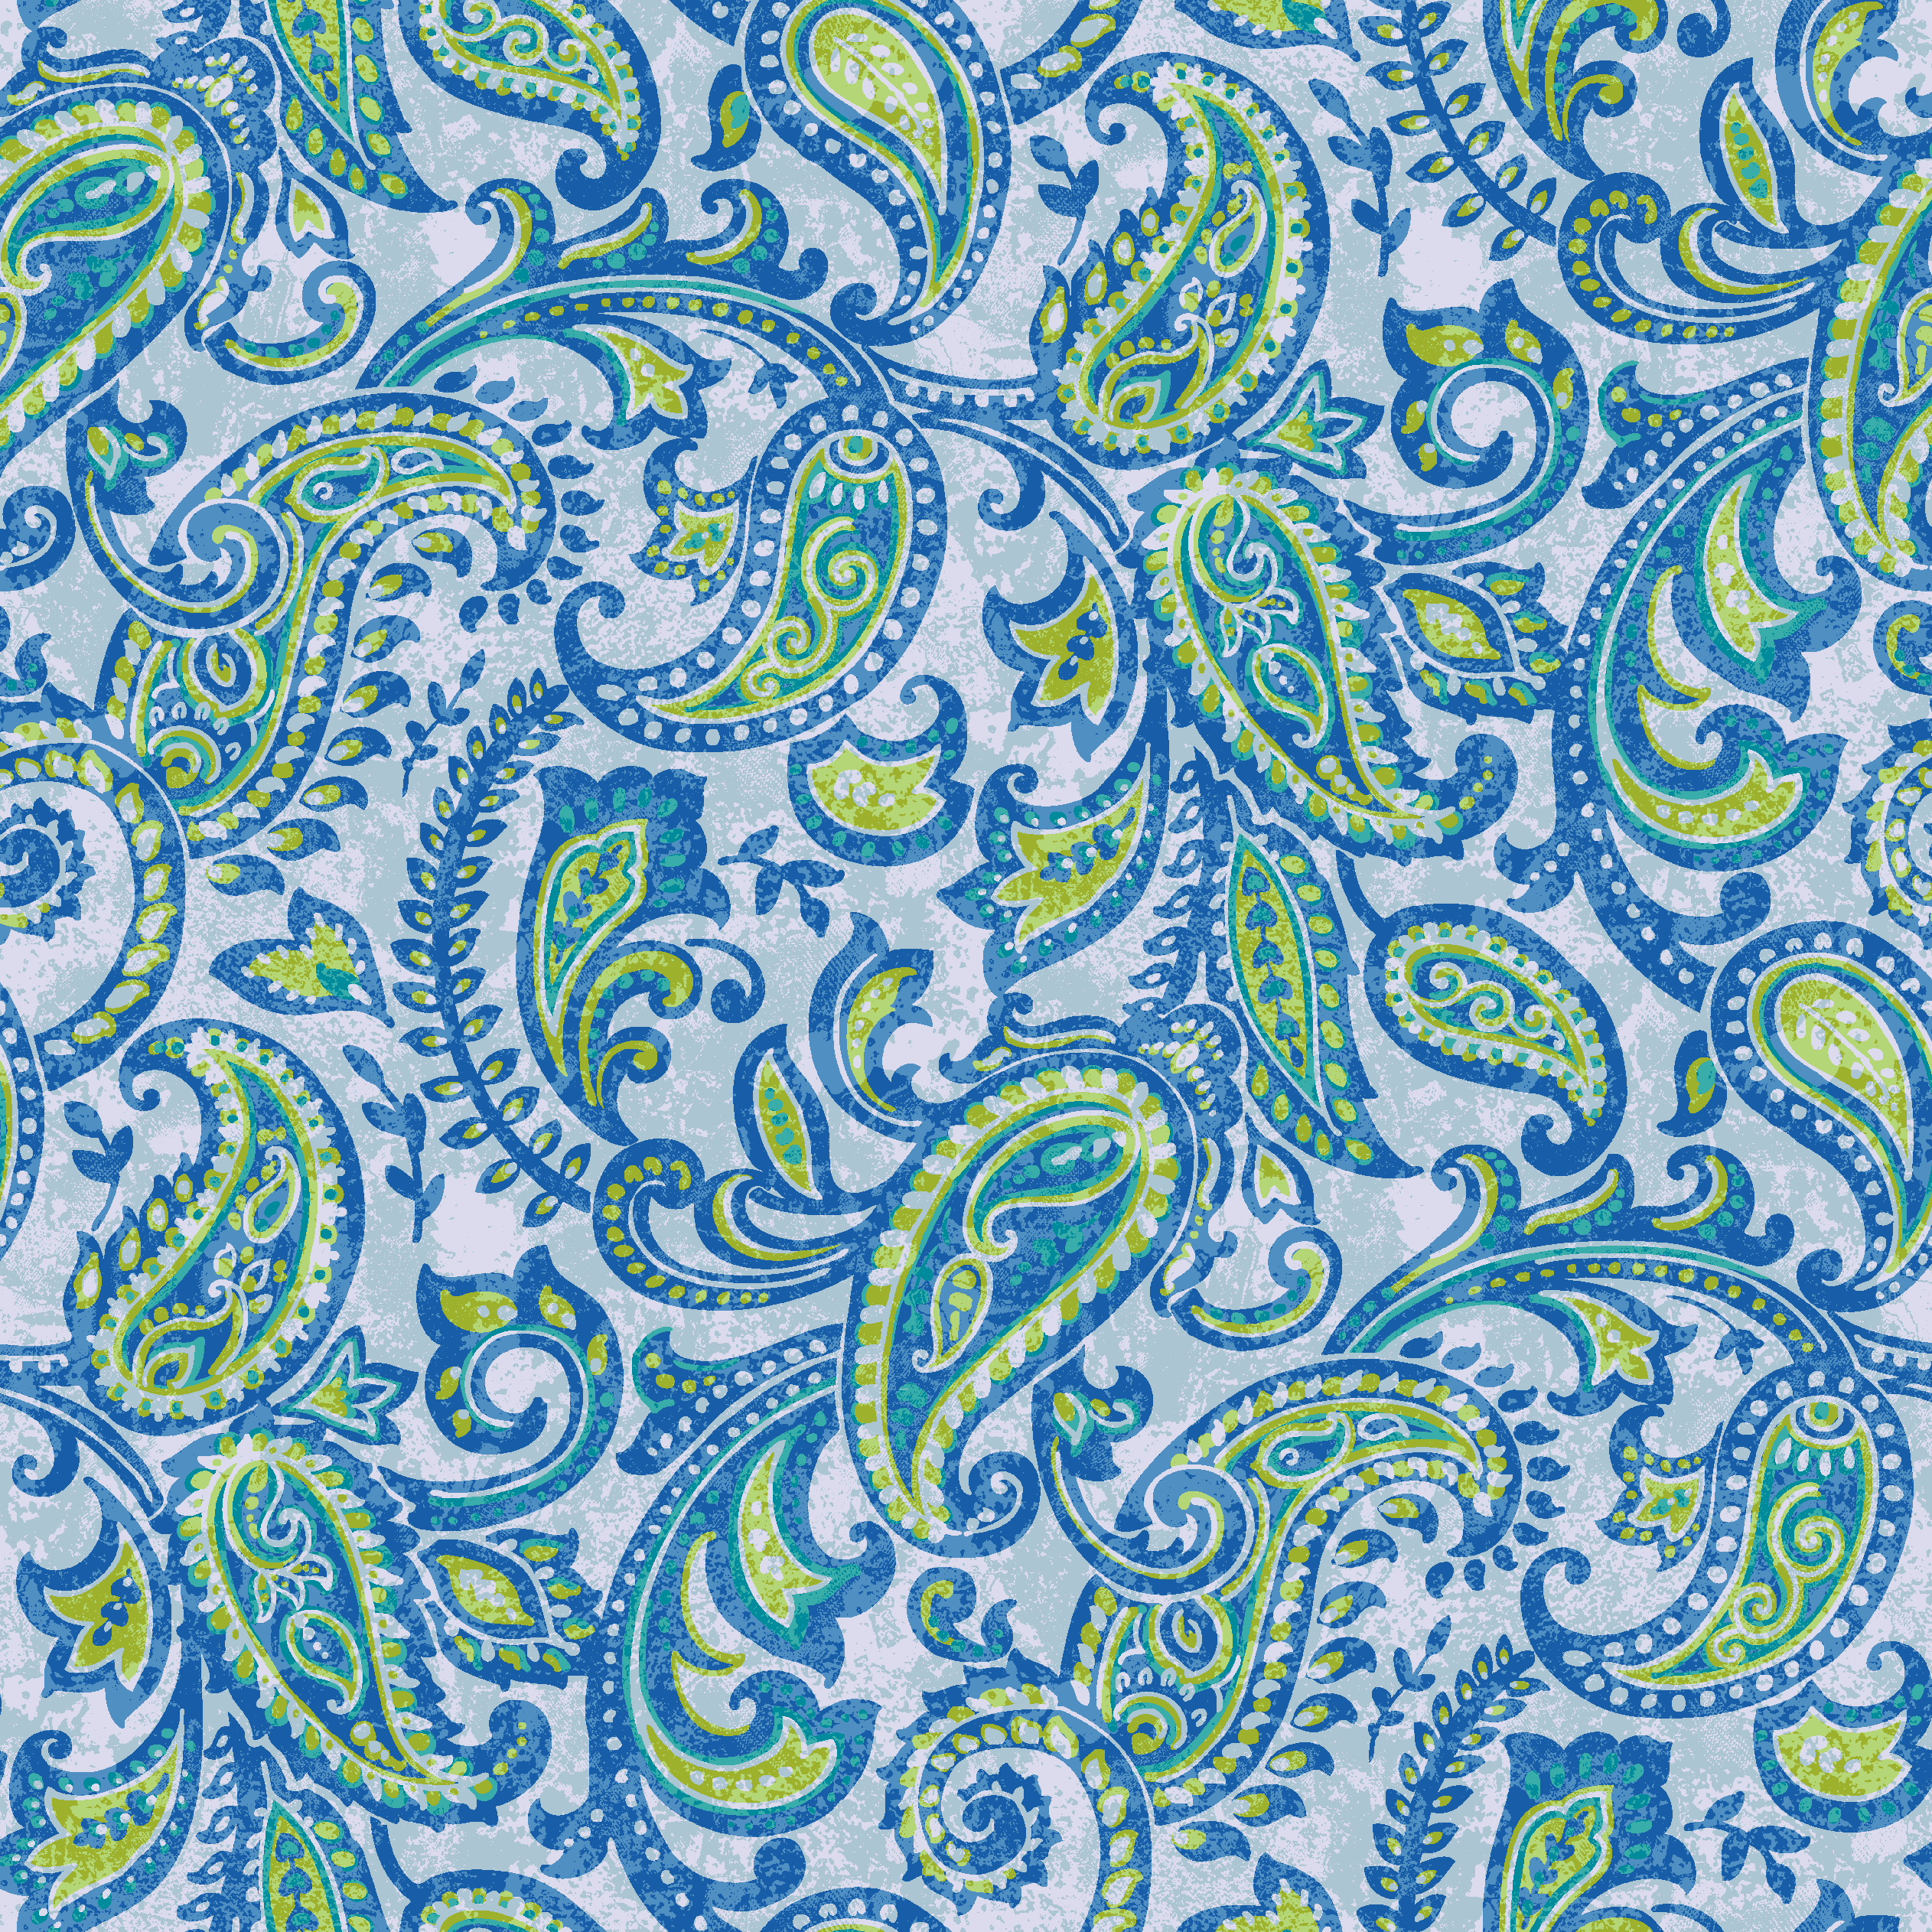 Waverly Inspirations Paisley Blue 100% Cotton Duck Fabric 45'' Cut By The Yard